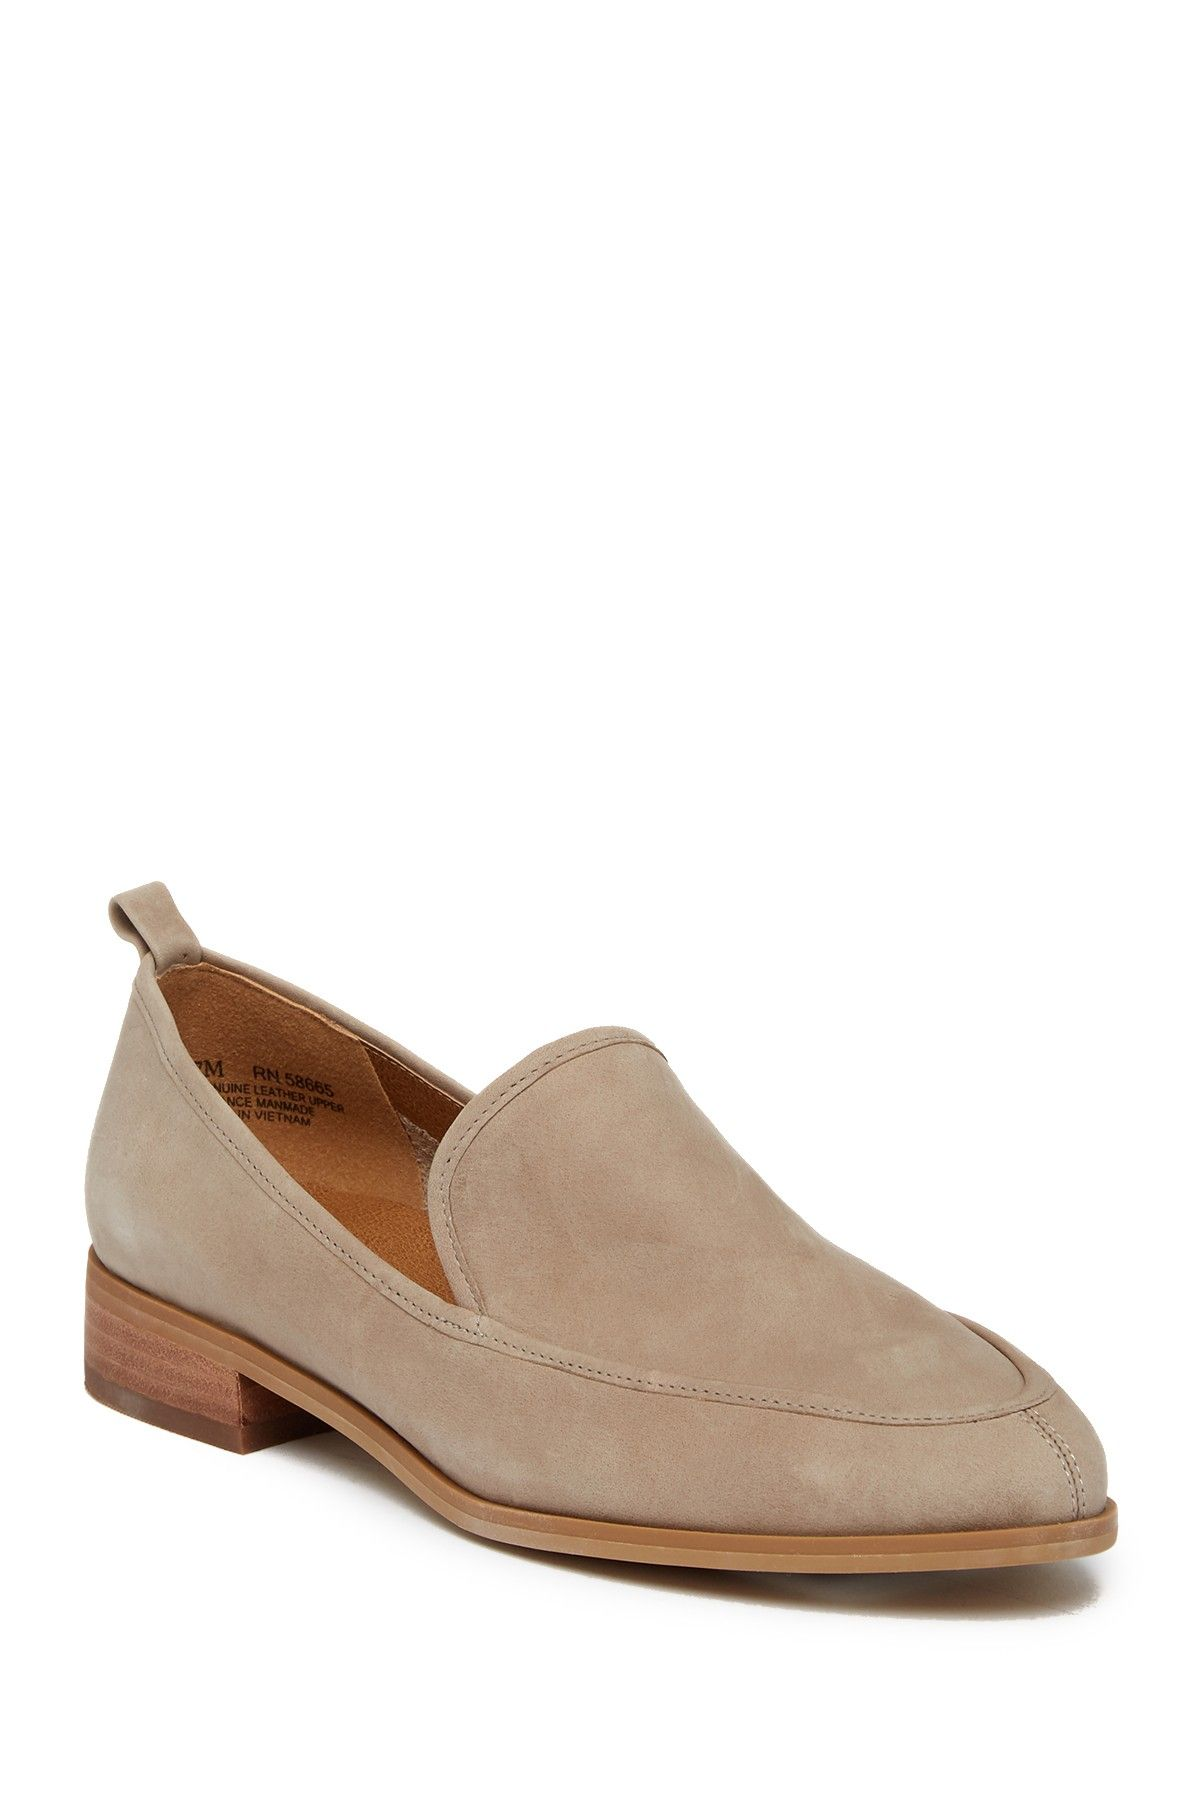 abfd22f1ba2 Kellen Almond Toe Loafer - Wide Width Available (Women) by SUSINA on   nordstrom rack